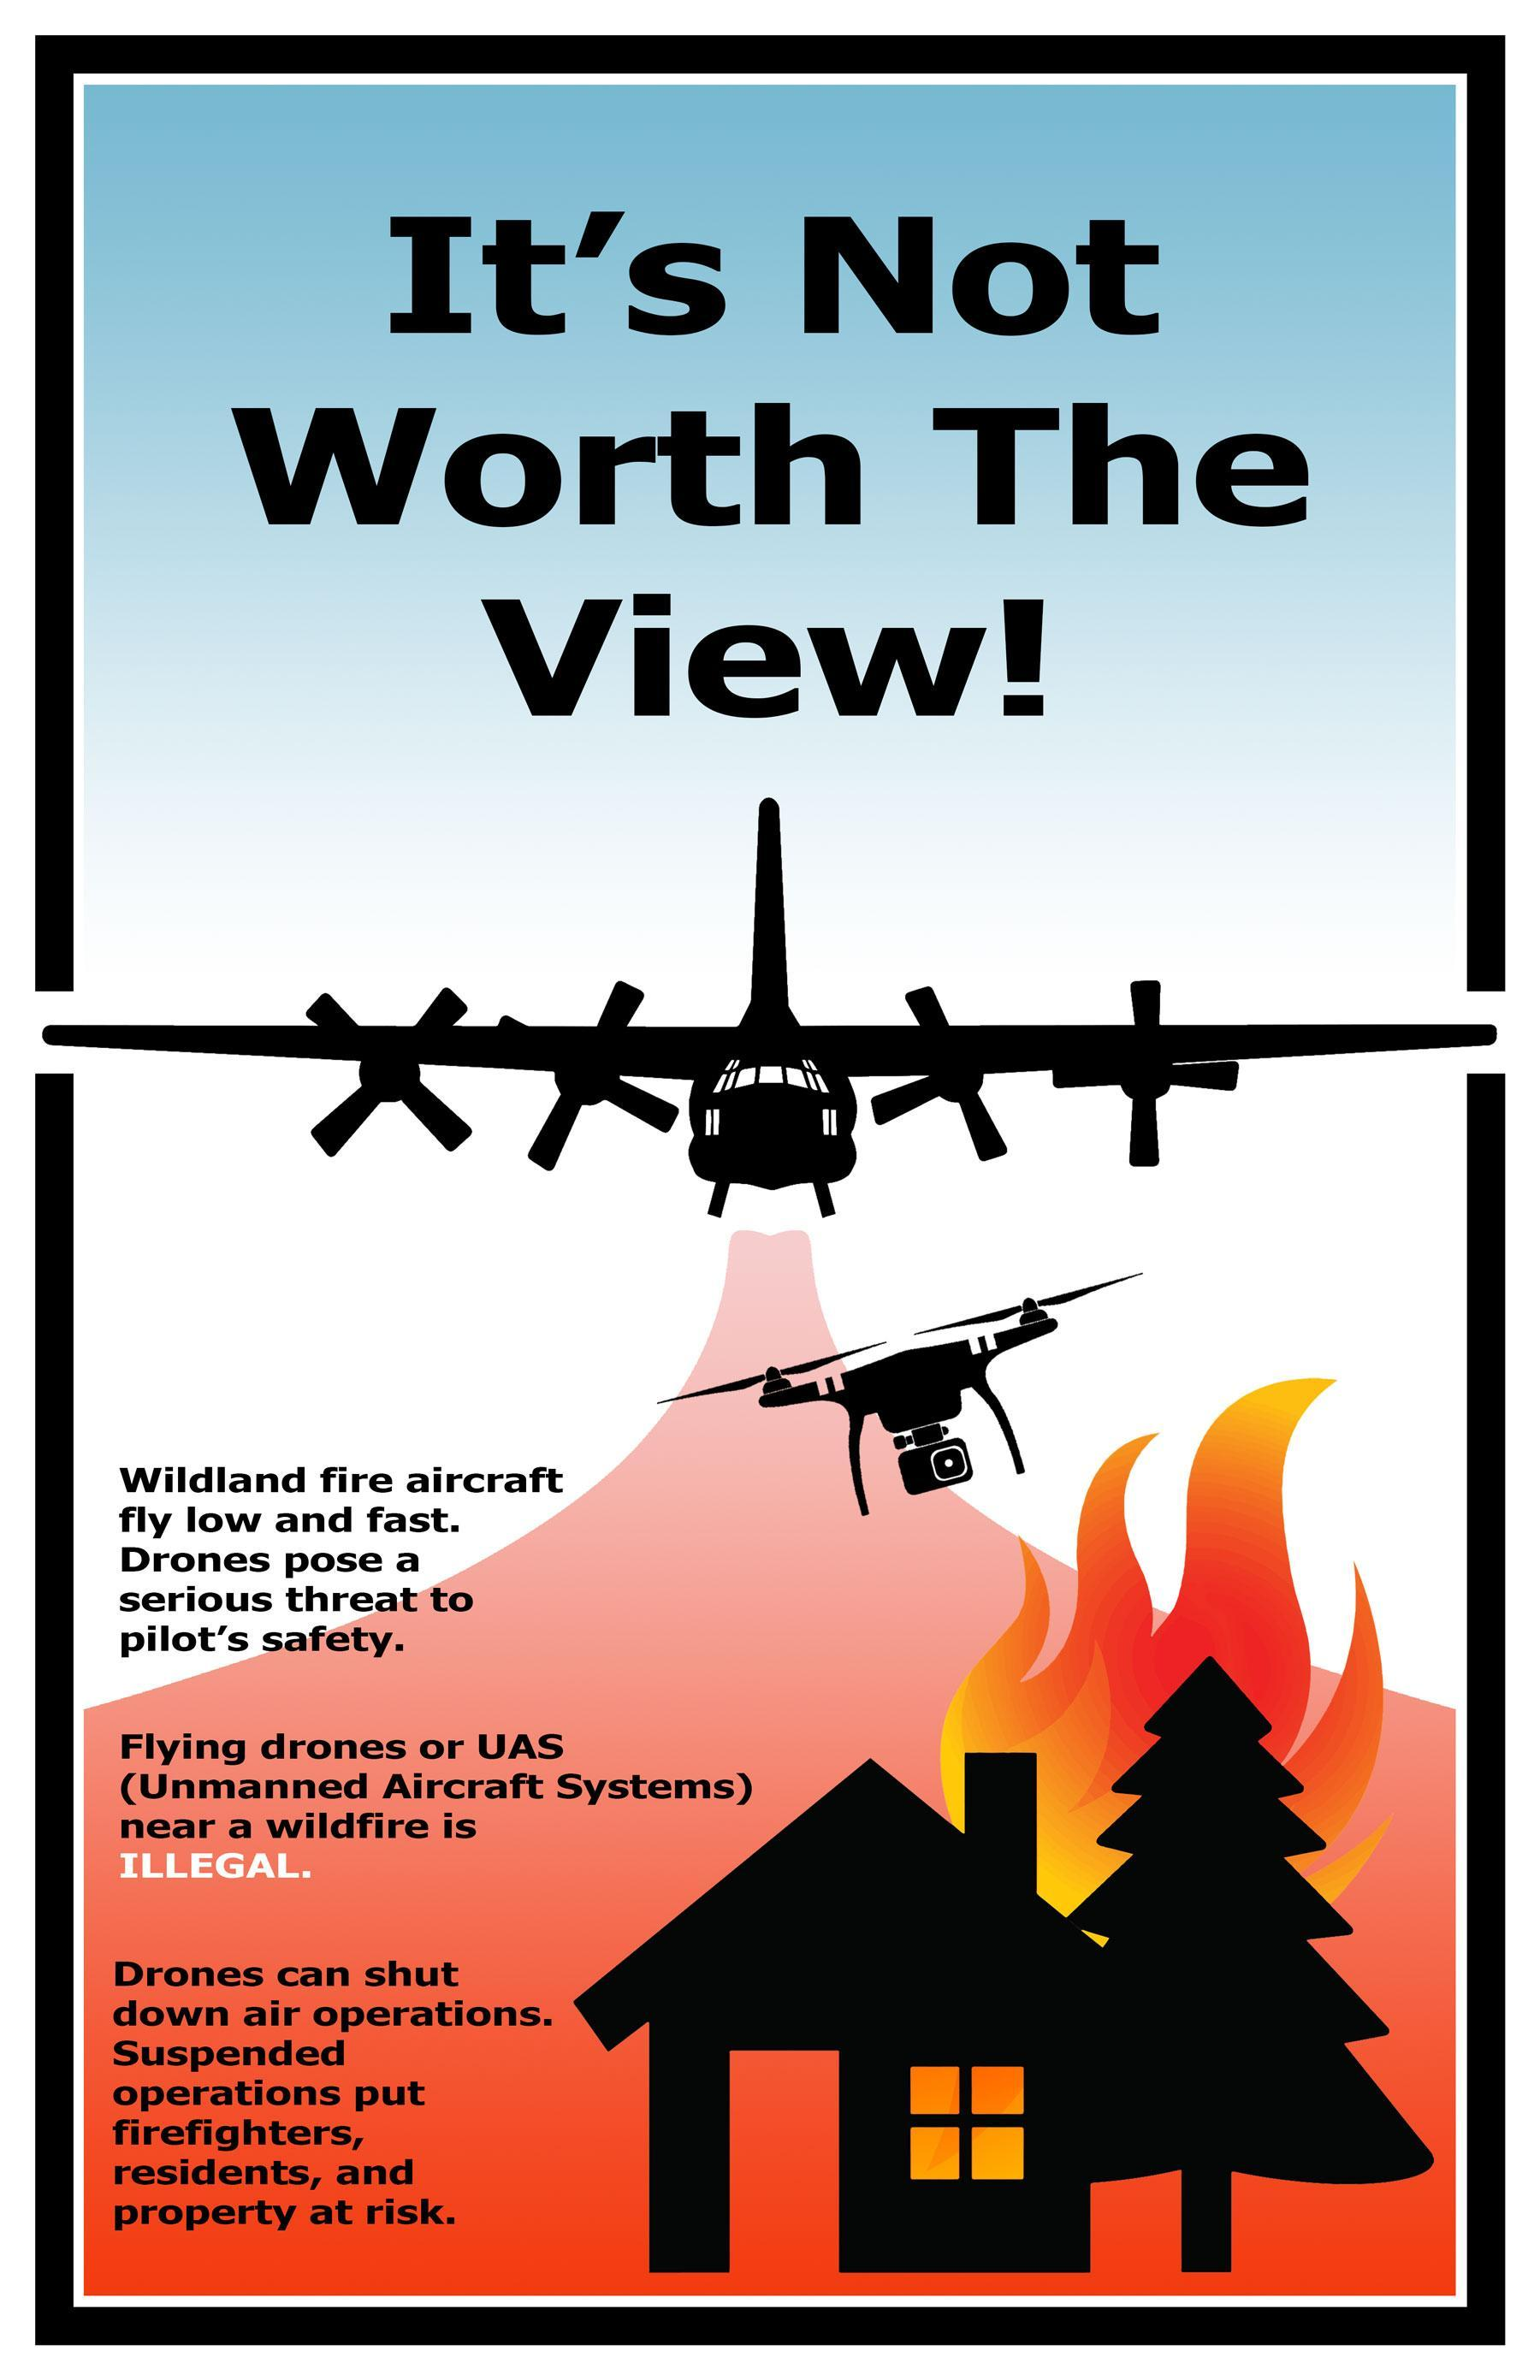 A drone flyies over a house graphic with graphical flames in the background. The Headline is I's not worth the view